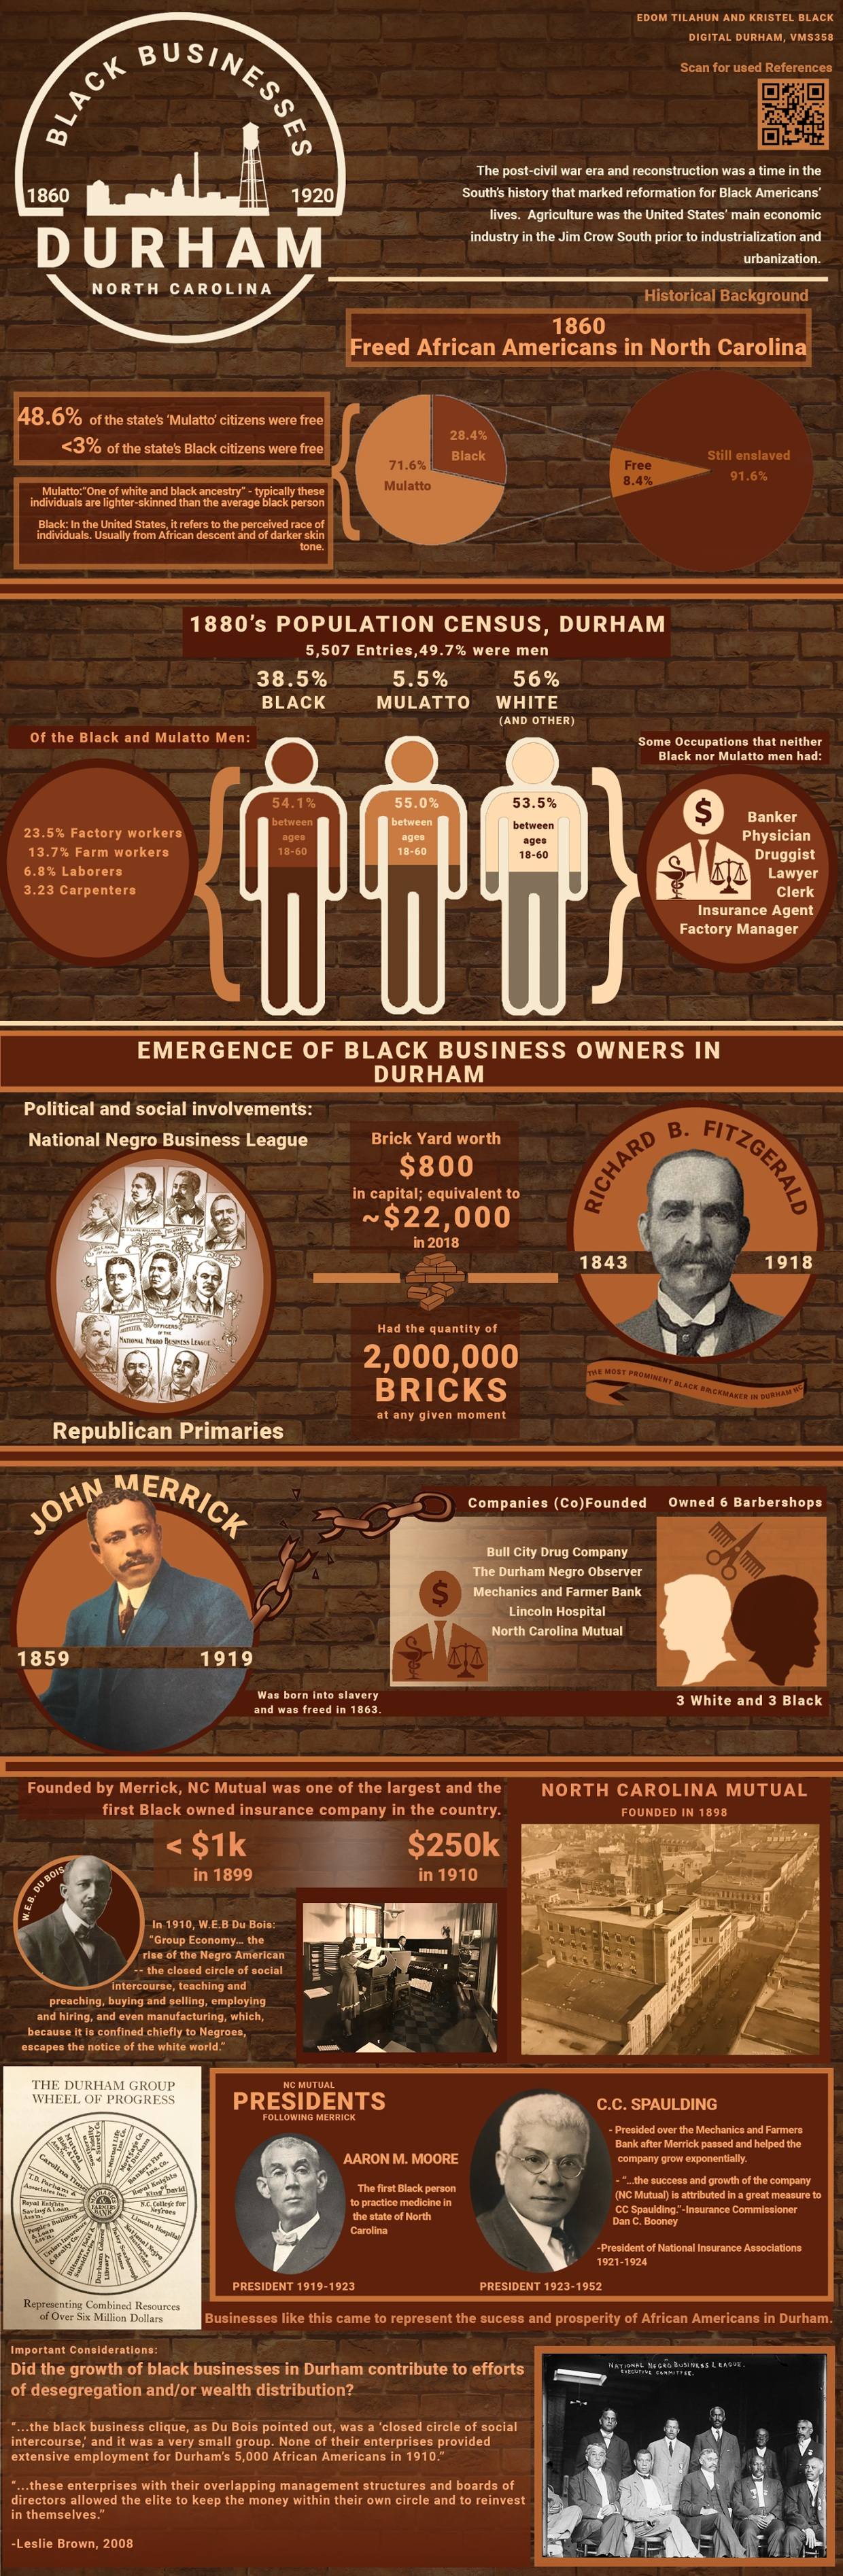 Emergence of Black Businesses in Durham, NC (1860-1920)